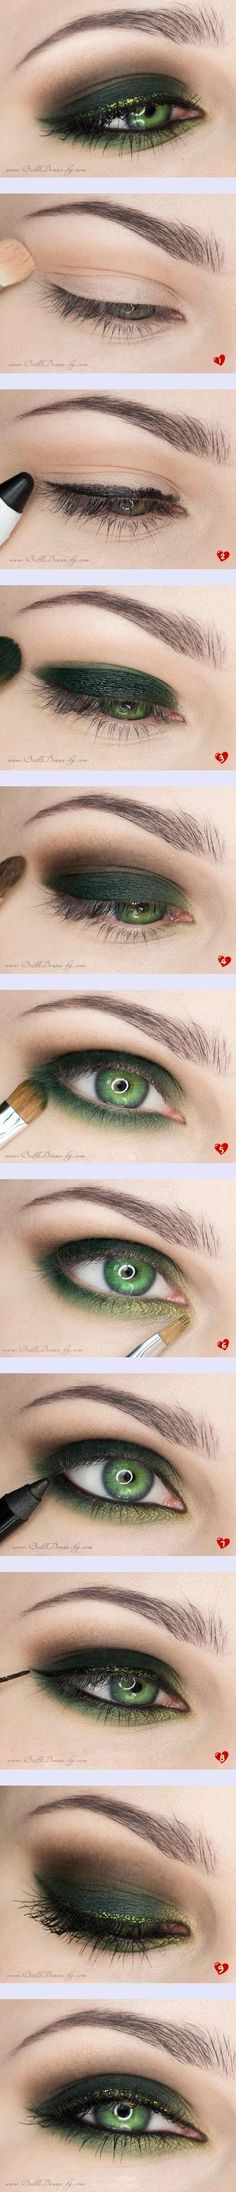 St. patrick's Day Perfect makeup idea: Emerald (or shamrock-any shade, just need light and dark) green smokey eye style  beautiful for green eyes!